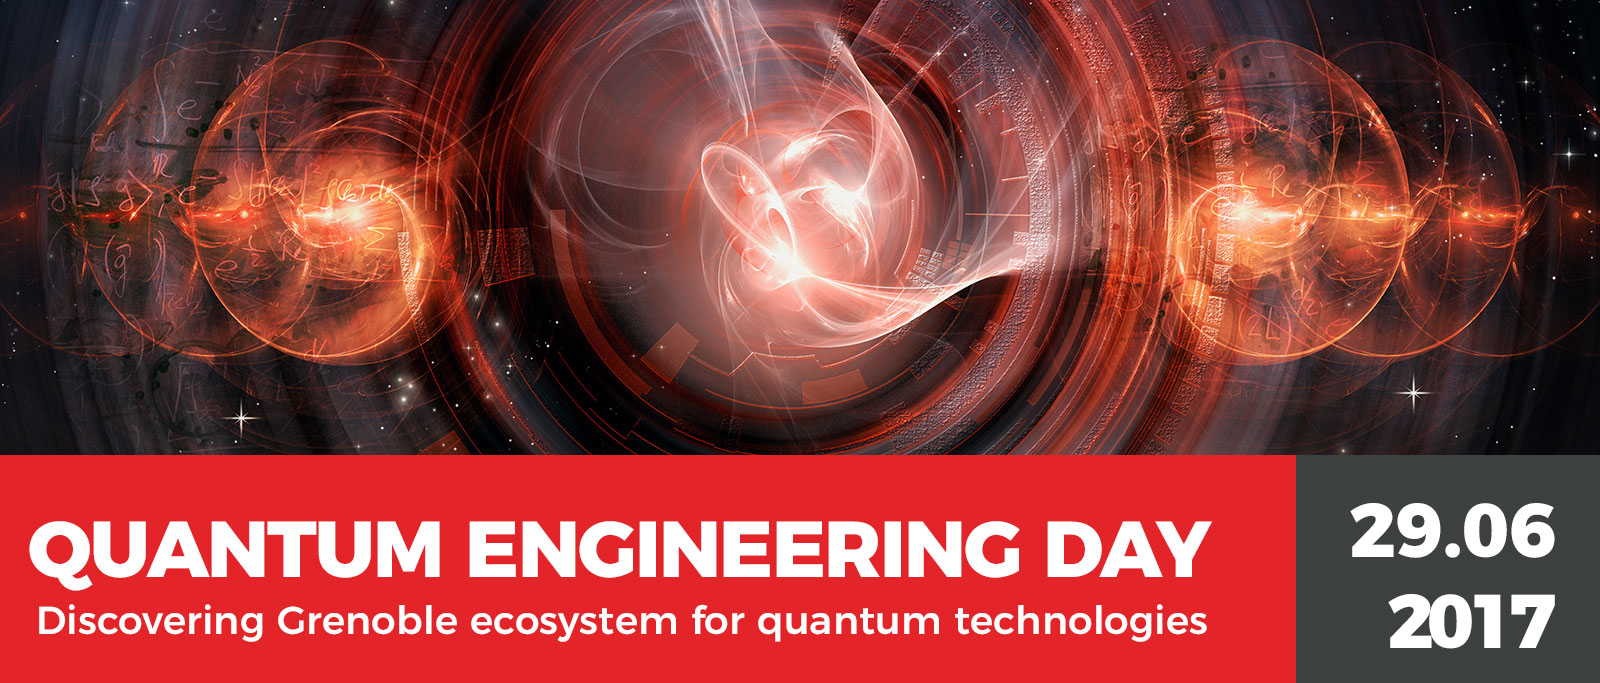 Quantum Engineering Day